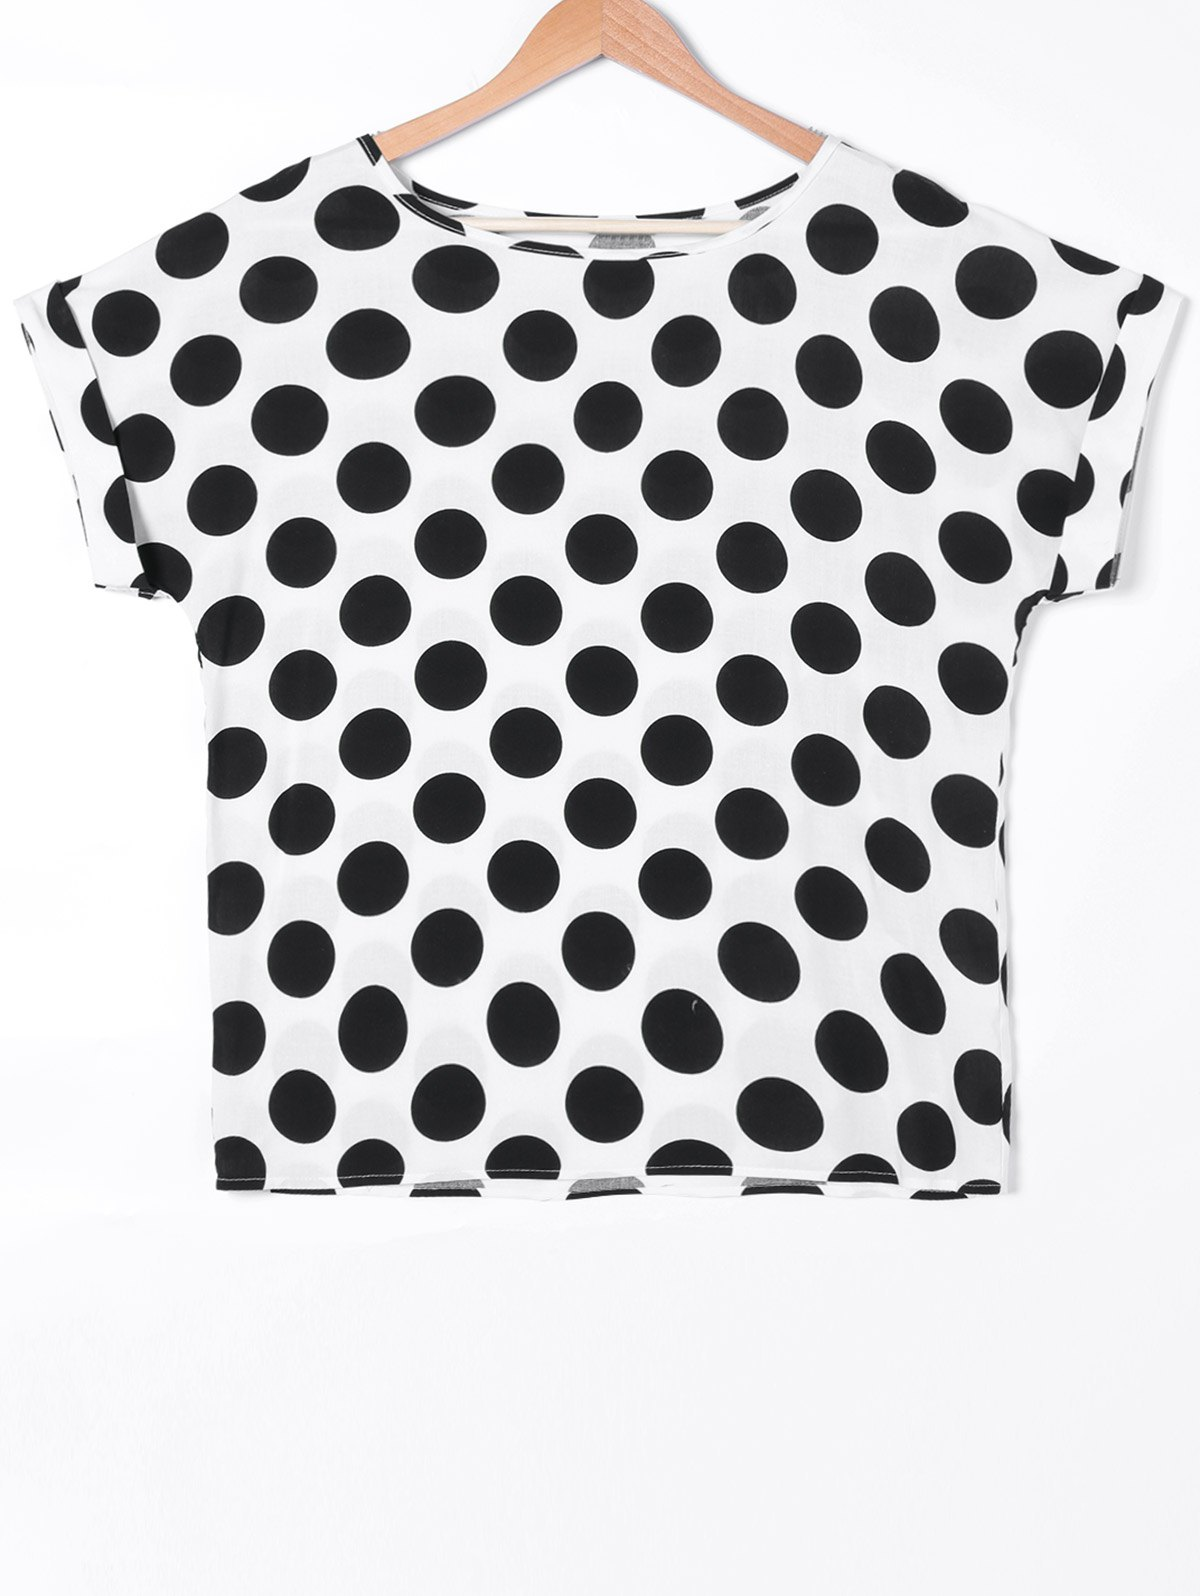 Sweet Polka Dot Print Cuffed Sleeve T-Shirt - WHITE/BLACK XL